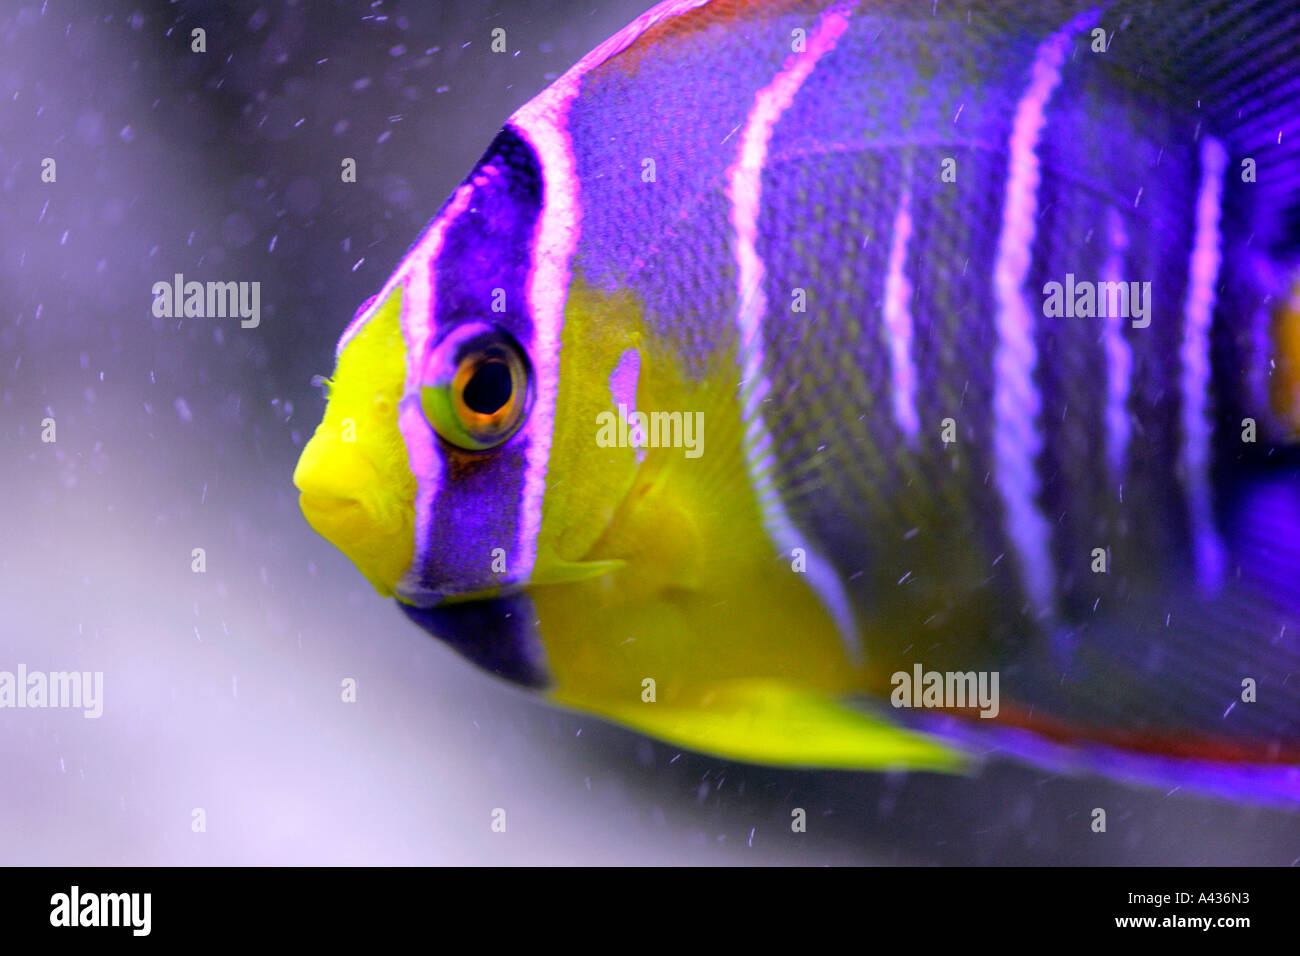 Freshwater Aquarium Fish In Dubai - Stock photo fish aquarium tank animal fishes freshwater aquaria tropical goldfish fancy red blue yellow lilac colour color genetic diversity